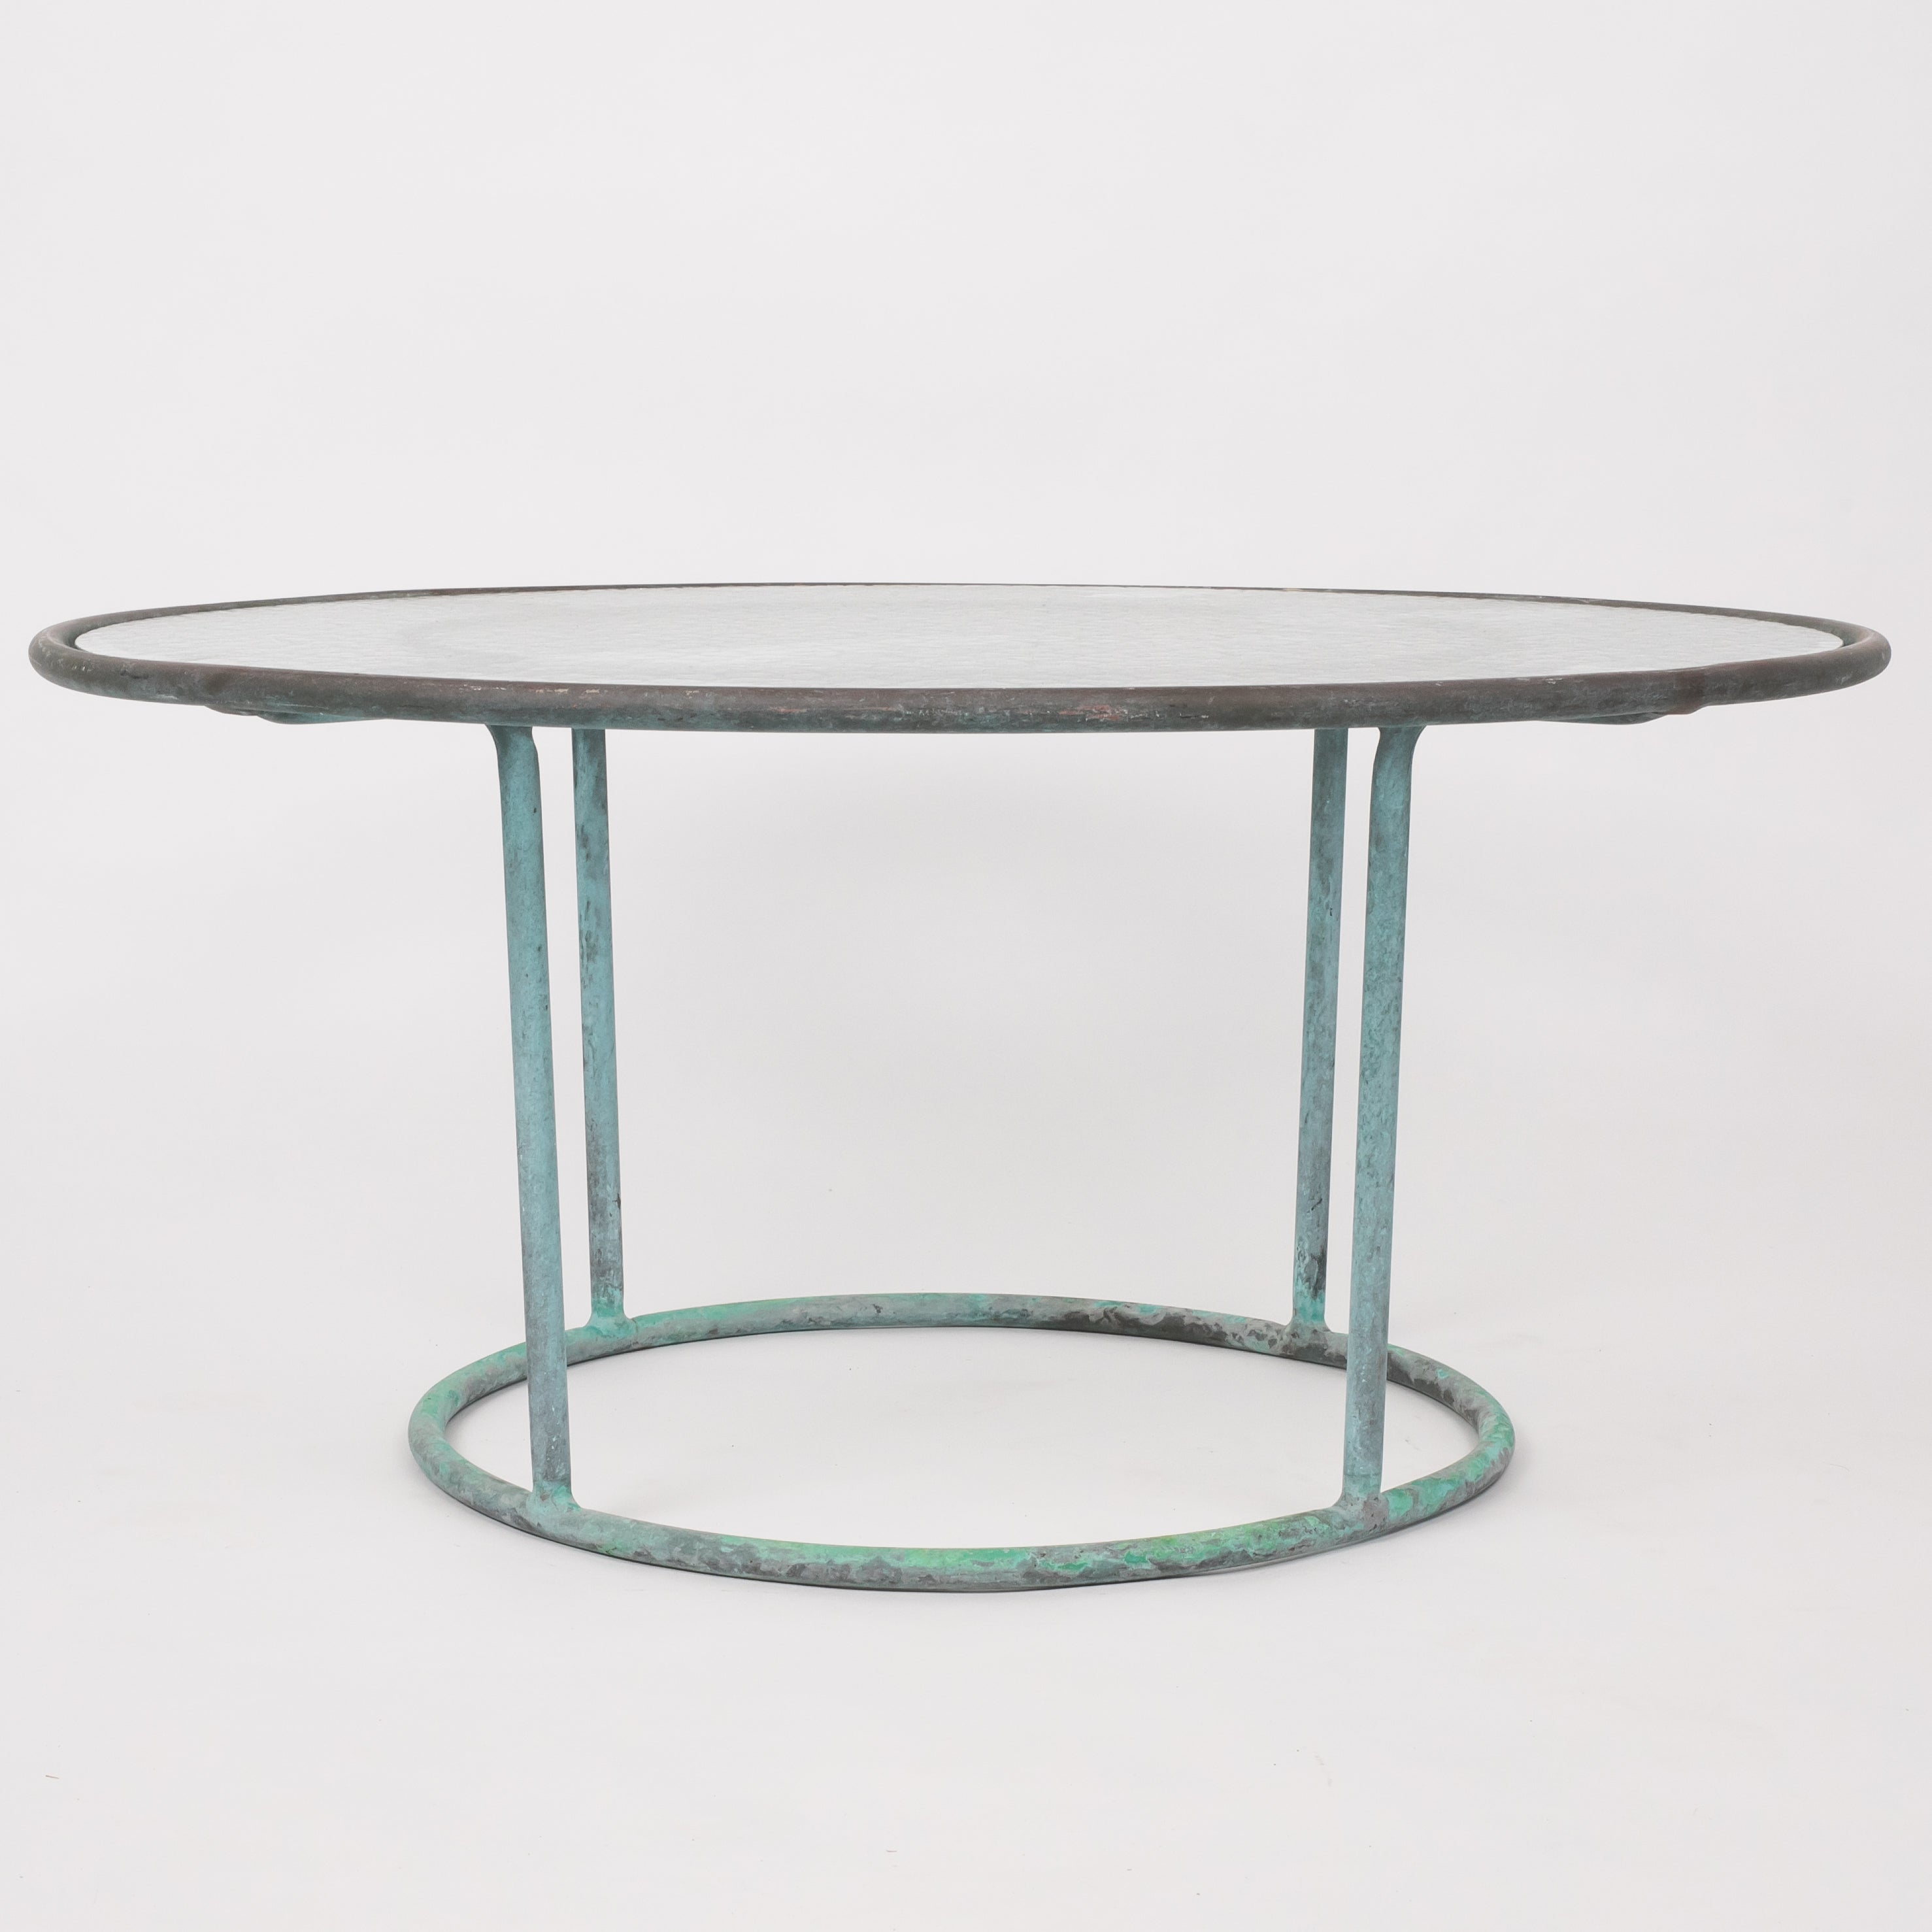 Walter Lamb Round Coffee Table with Hammered Glass Top – Den M¸bler